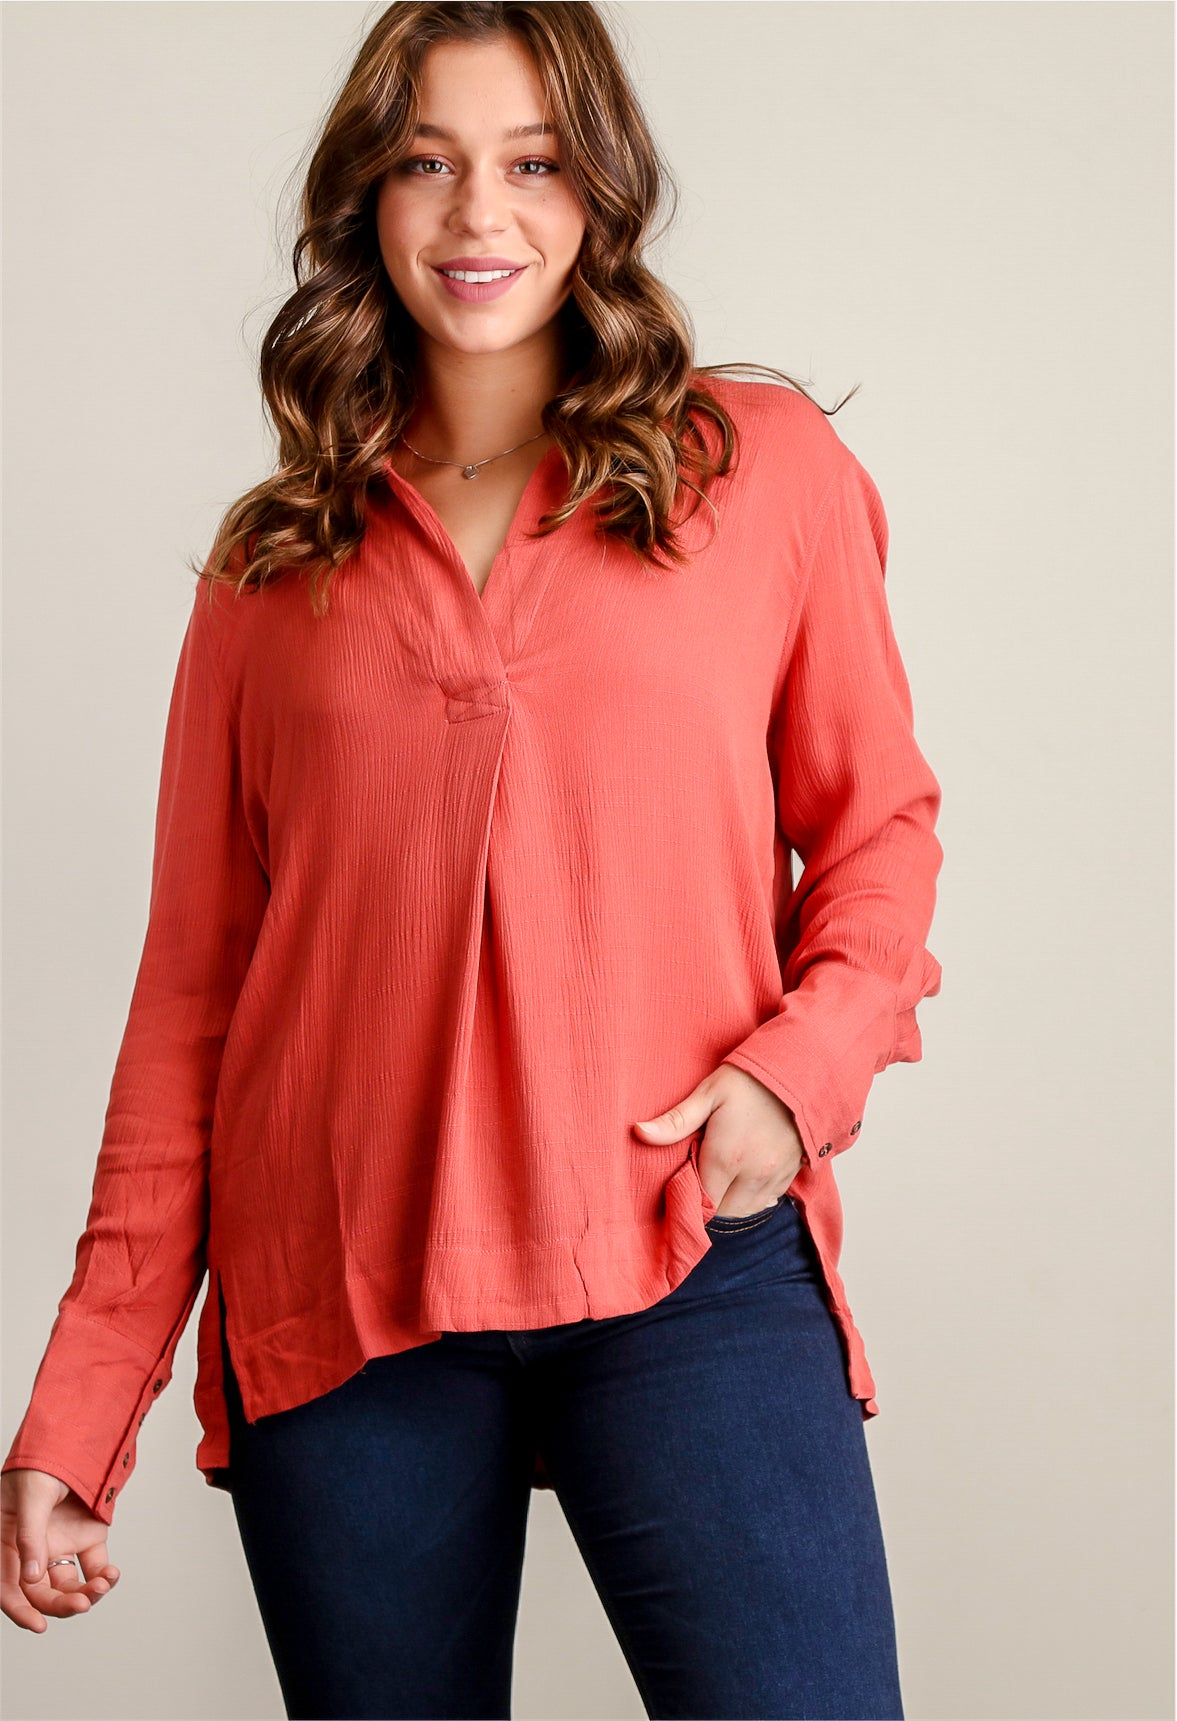 Terra Cotta Blouse